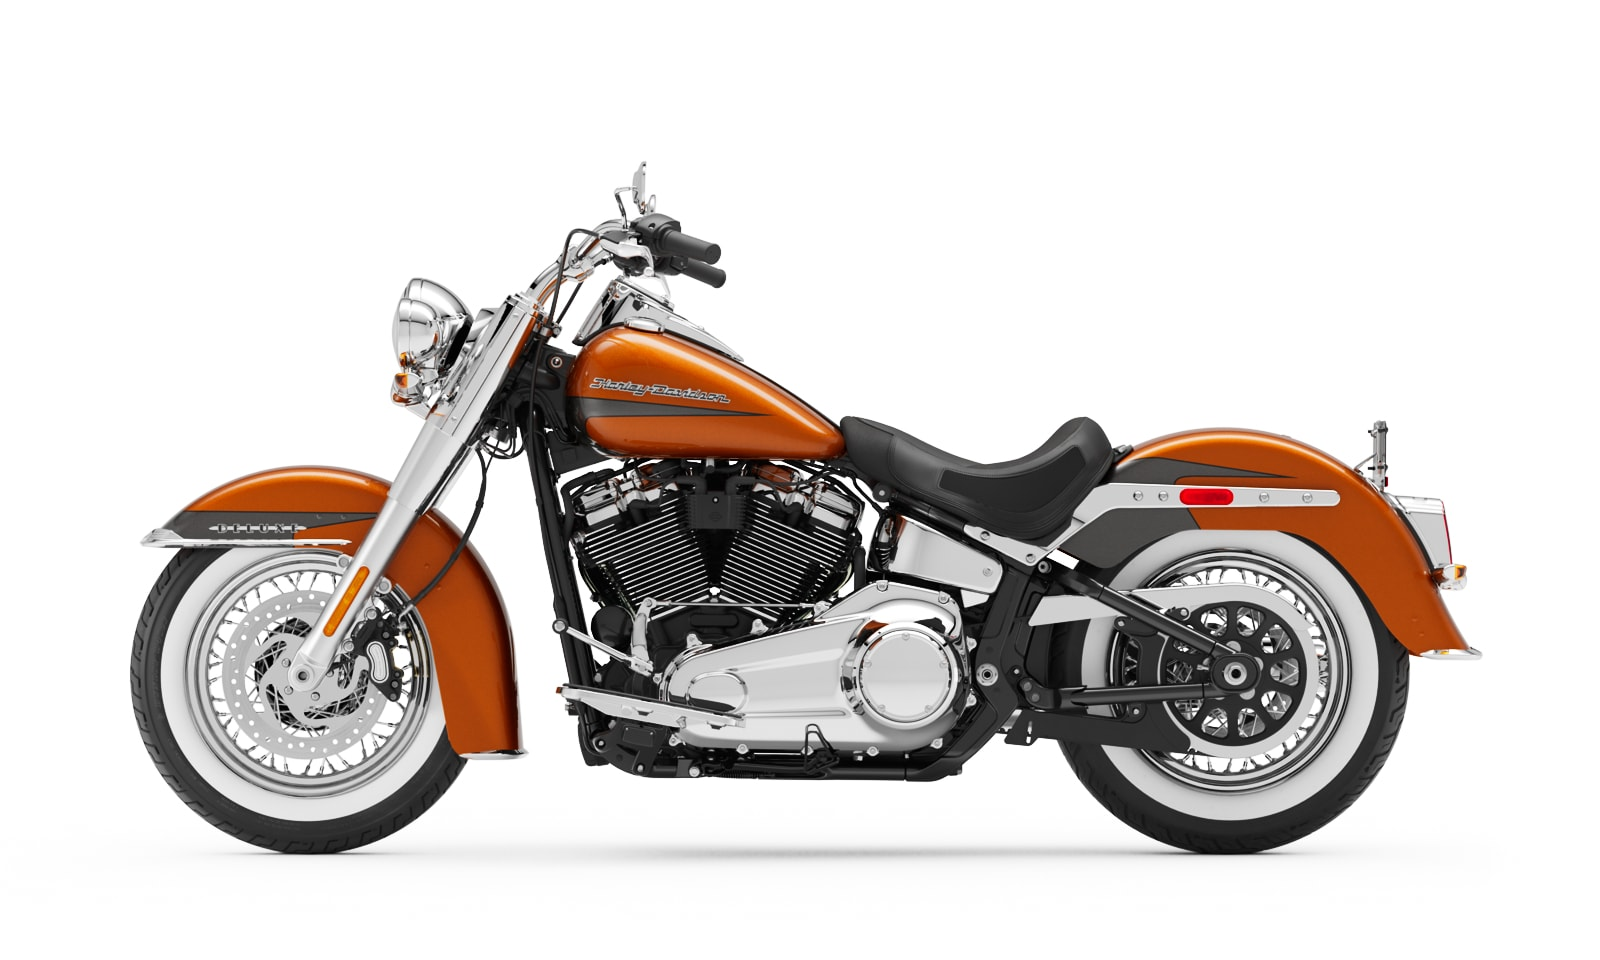 Wiring Diagram 2011 Fatboy Motorcycle Tombstone Tailight from www.harley-davidson.com